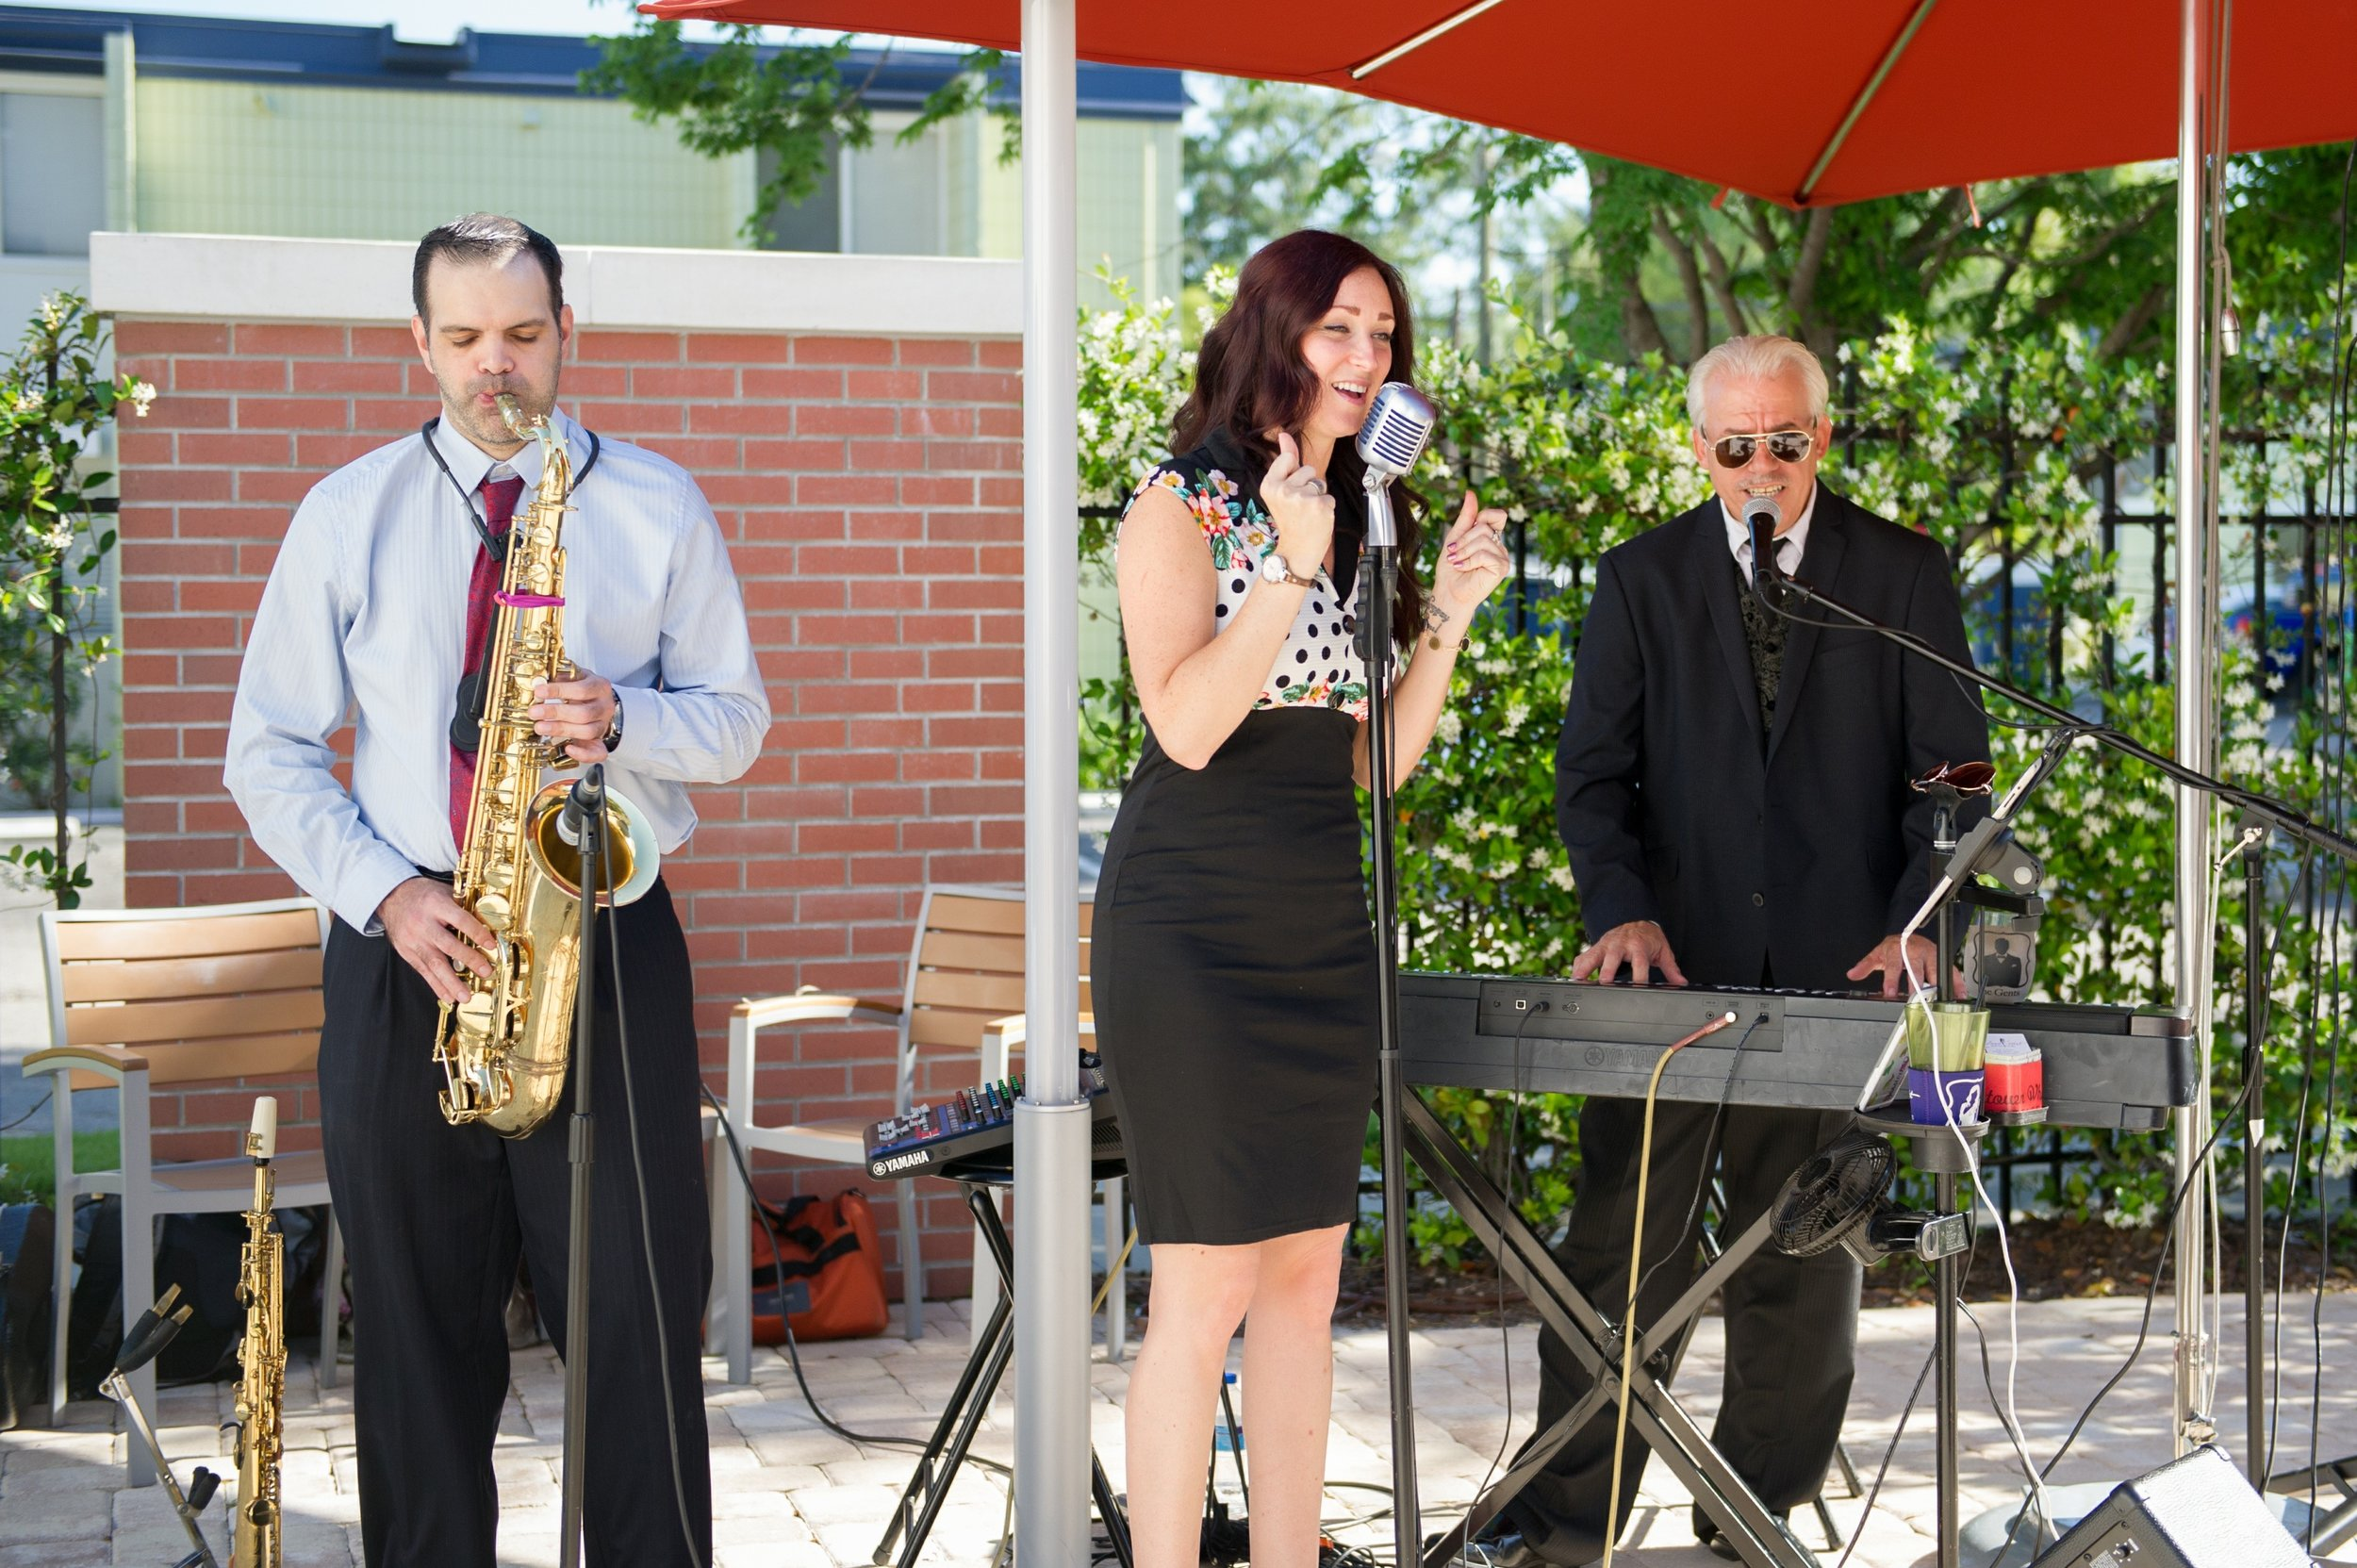 A live jazz band serenaded guests during a poolside cocktail hour at the foodie-focused Epicurean hotel.